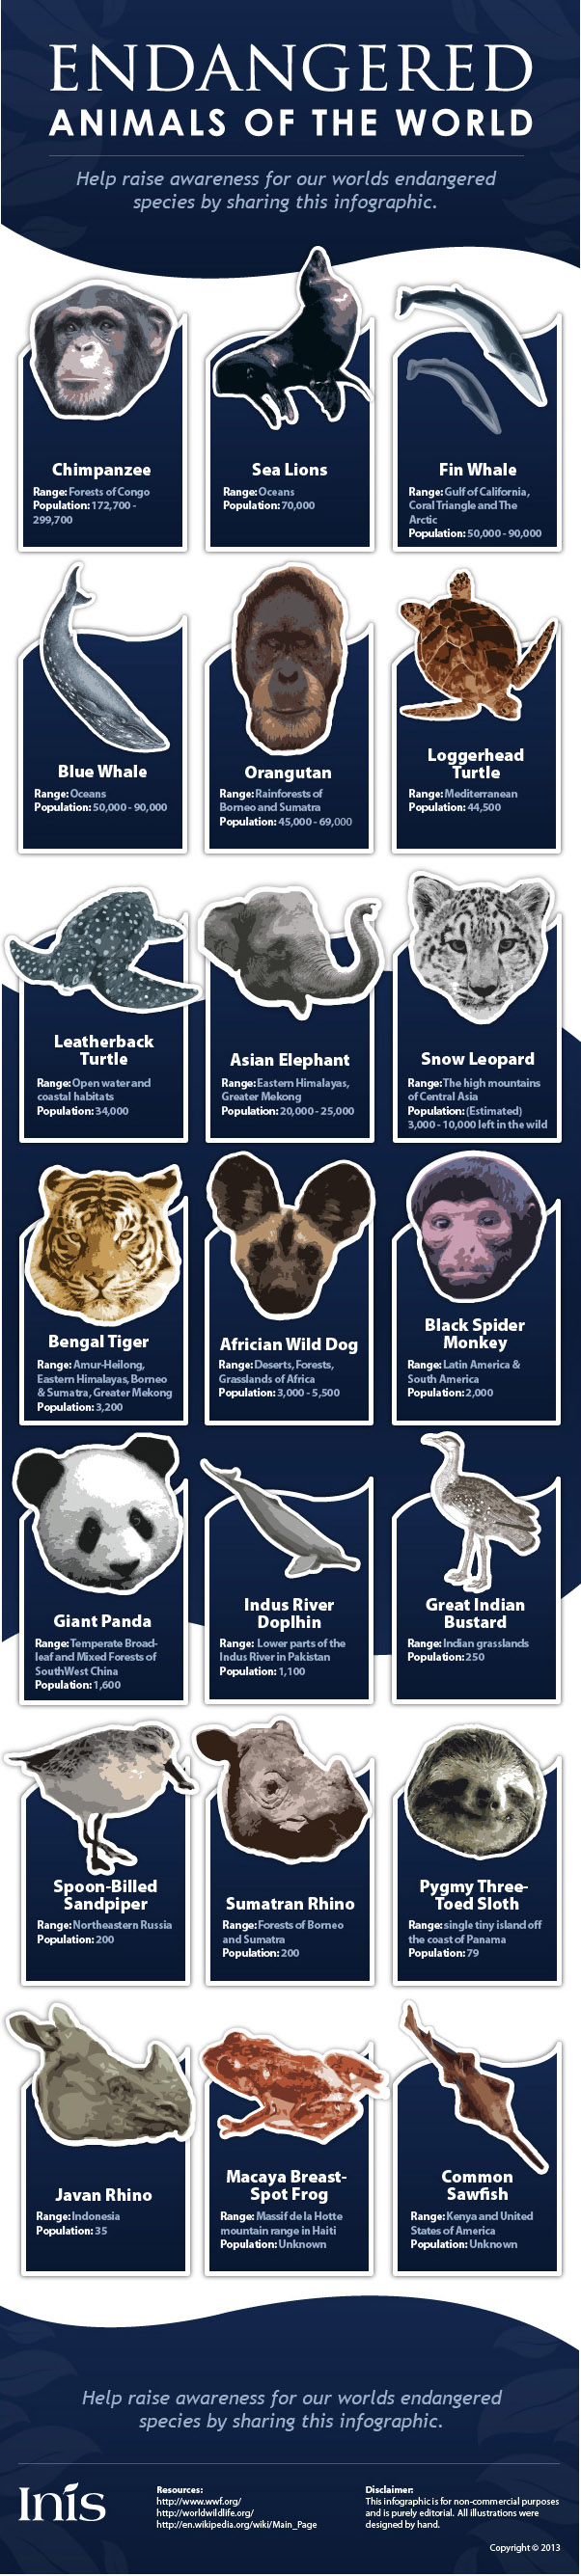 Endangered Animals of the World Infographic